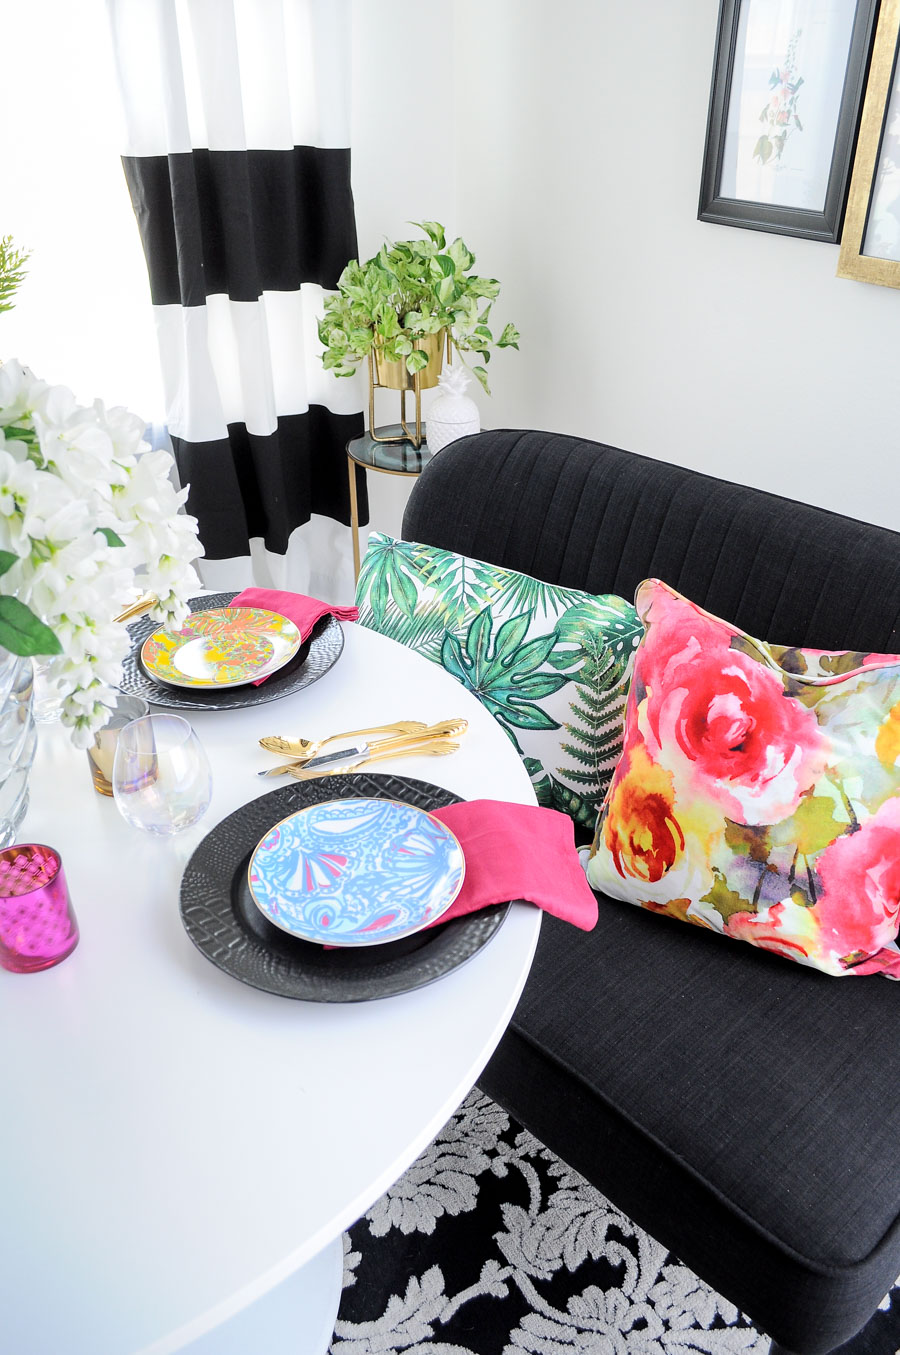 A colorful, floral and eclectic small dining space featuring gorgeous black and white striped curtains.